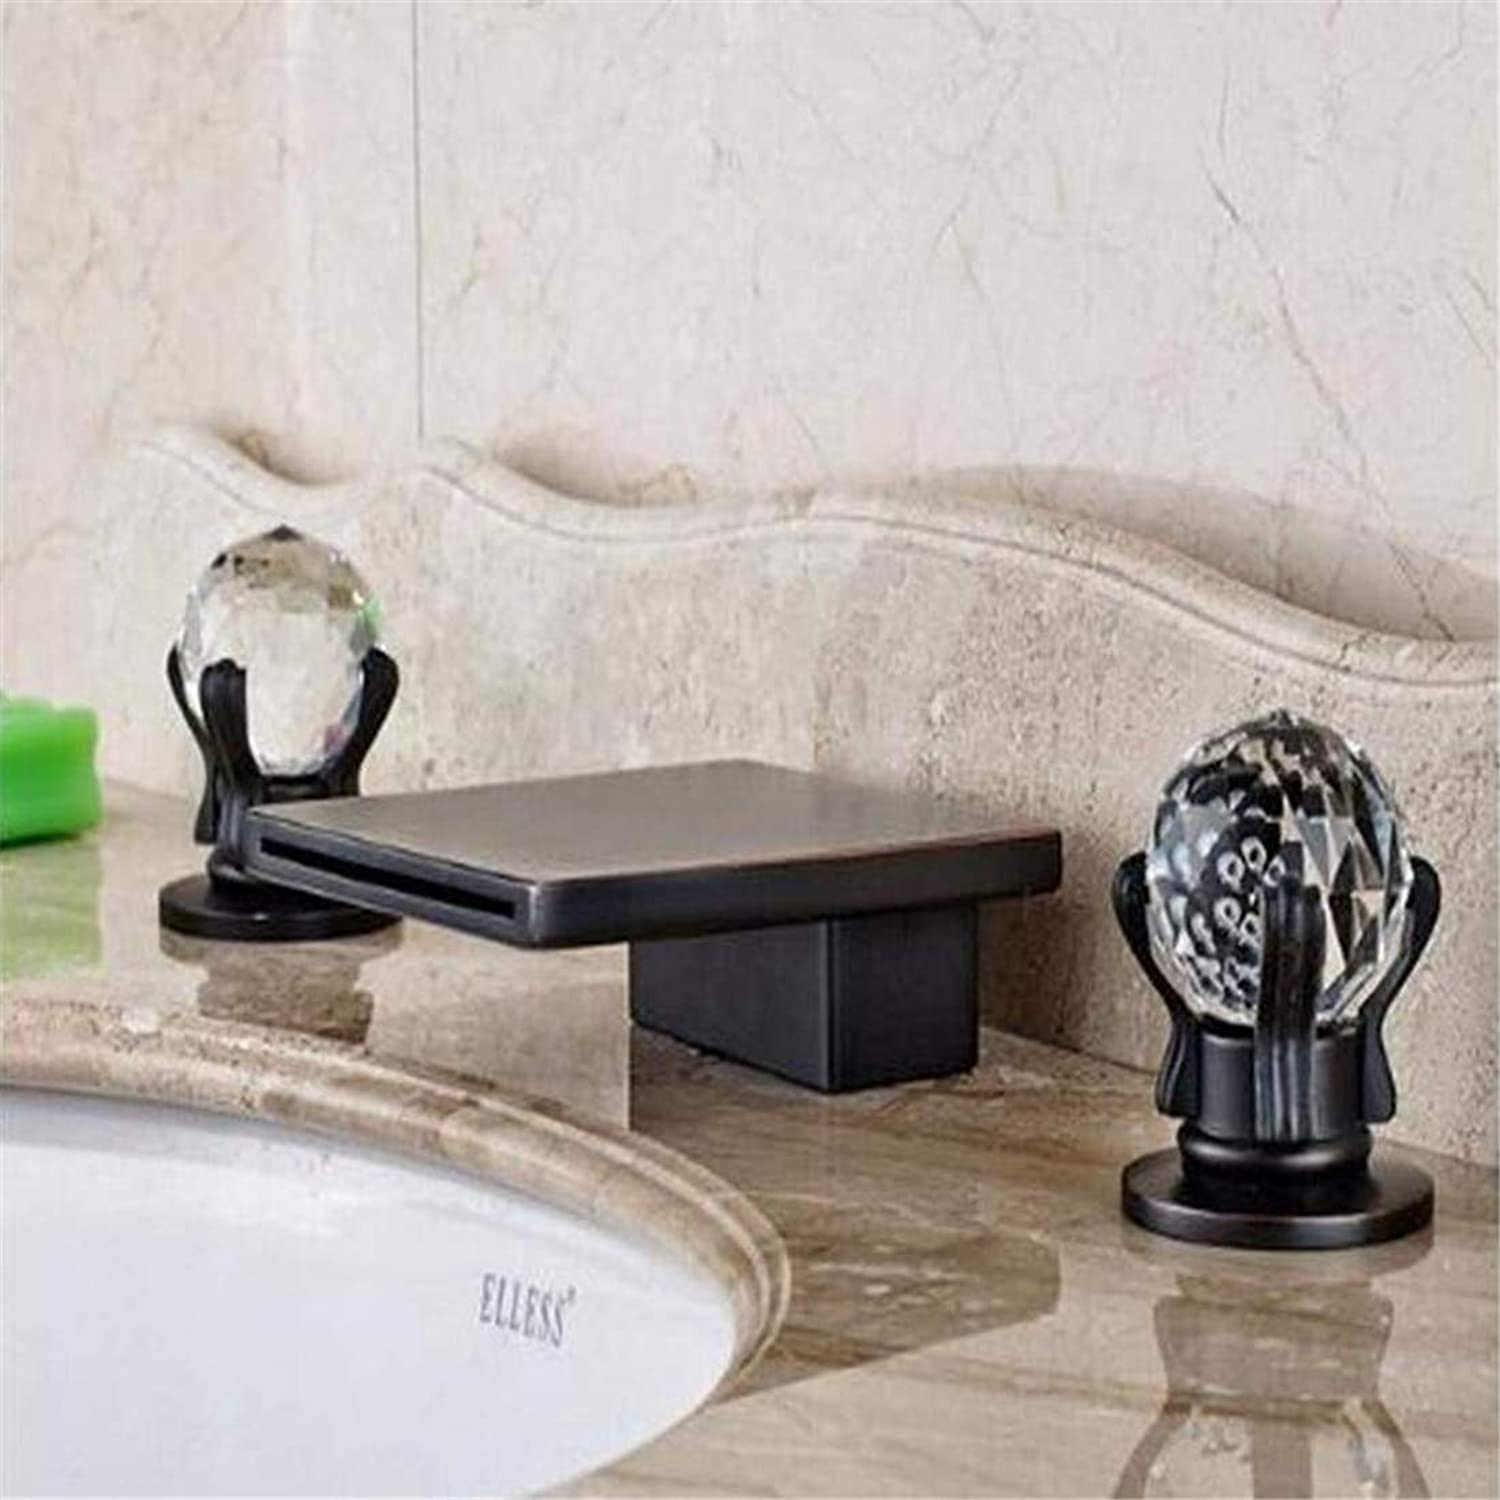 Faucet Chrome Brass Retro Faucet Bathroom Faucetoil Rubbed Bronze Double Handles Bathroom Basin Sink Water Tap Deck Mounted